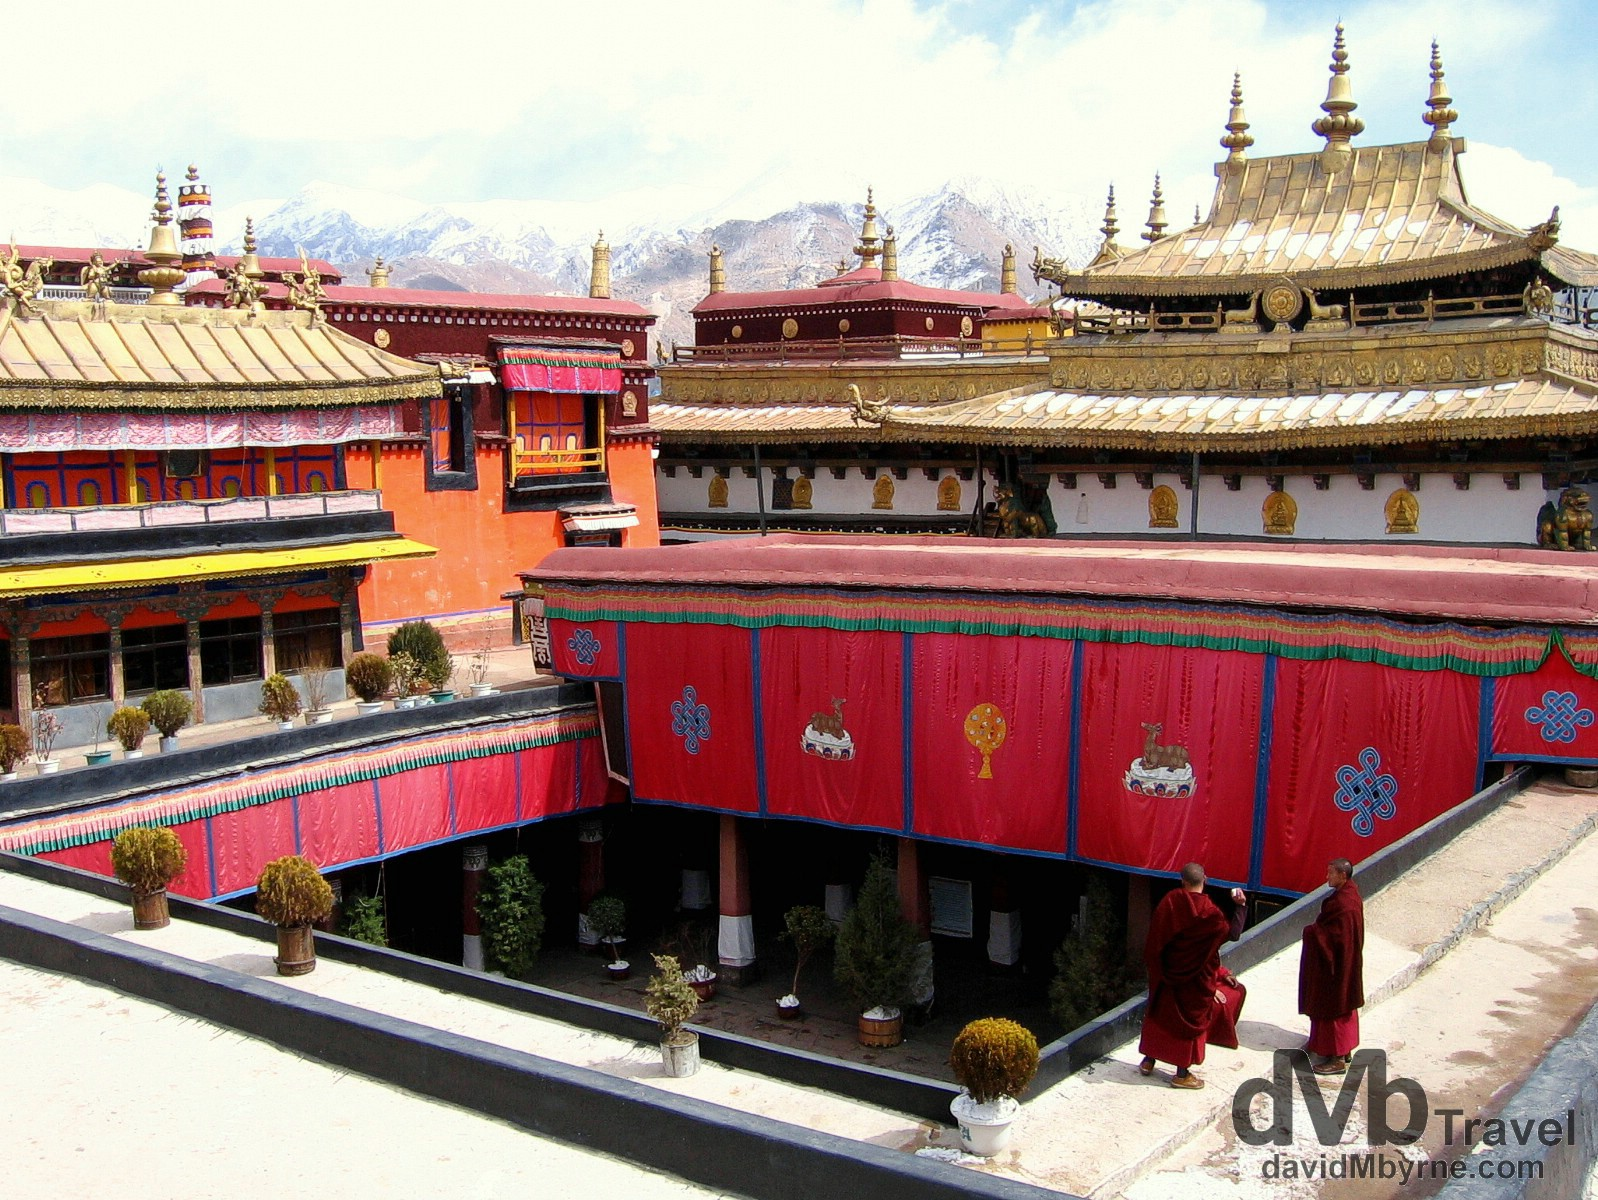 Young Buddhist Monks on the roof of the Jokhang Temple. Lhasa, Tibet. February 27th 2008.